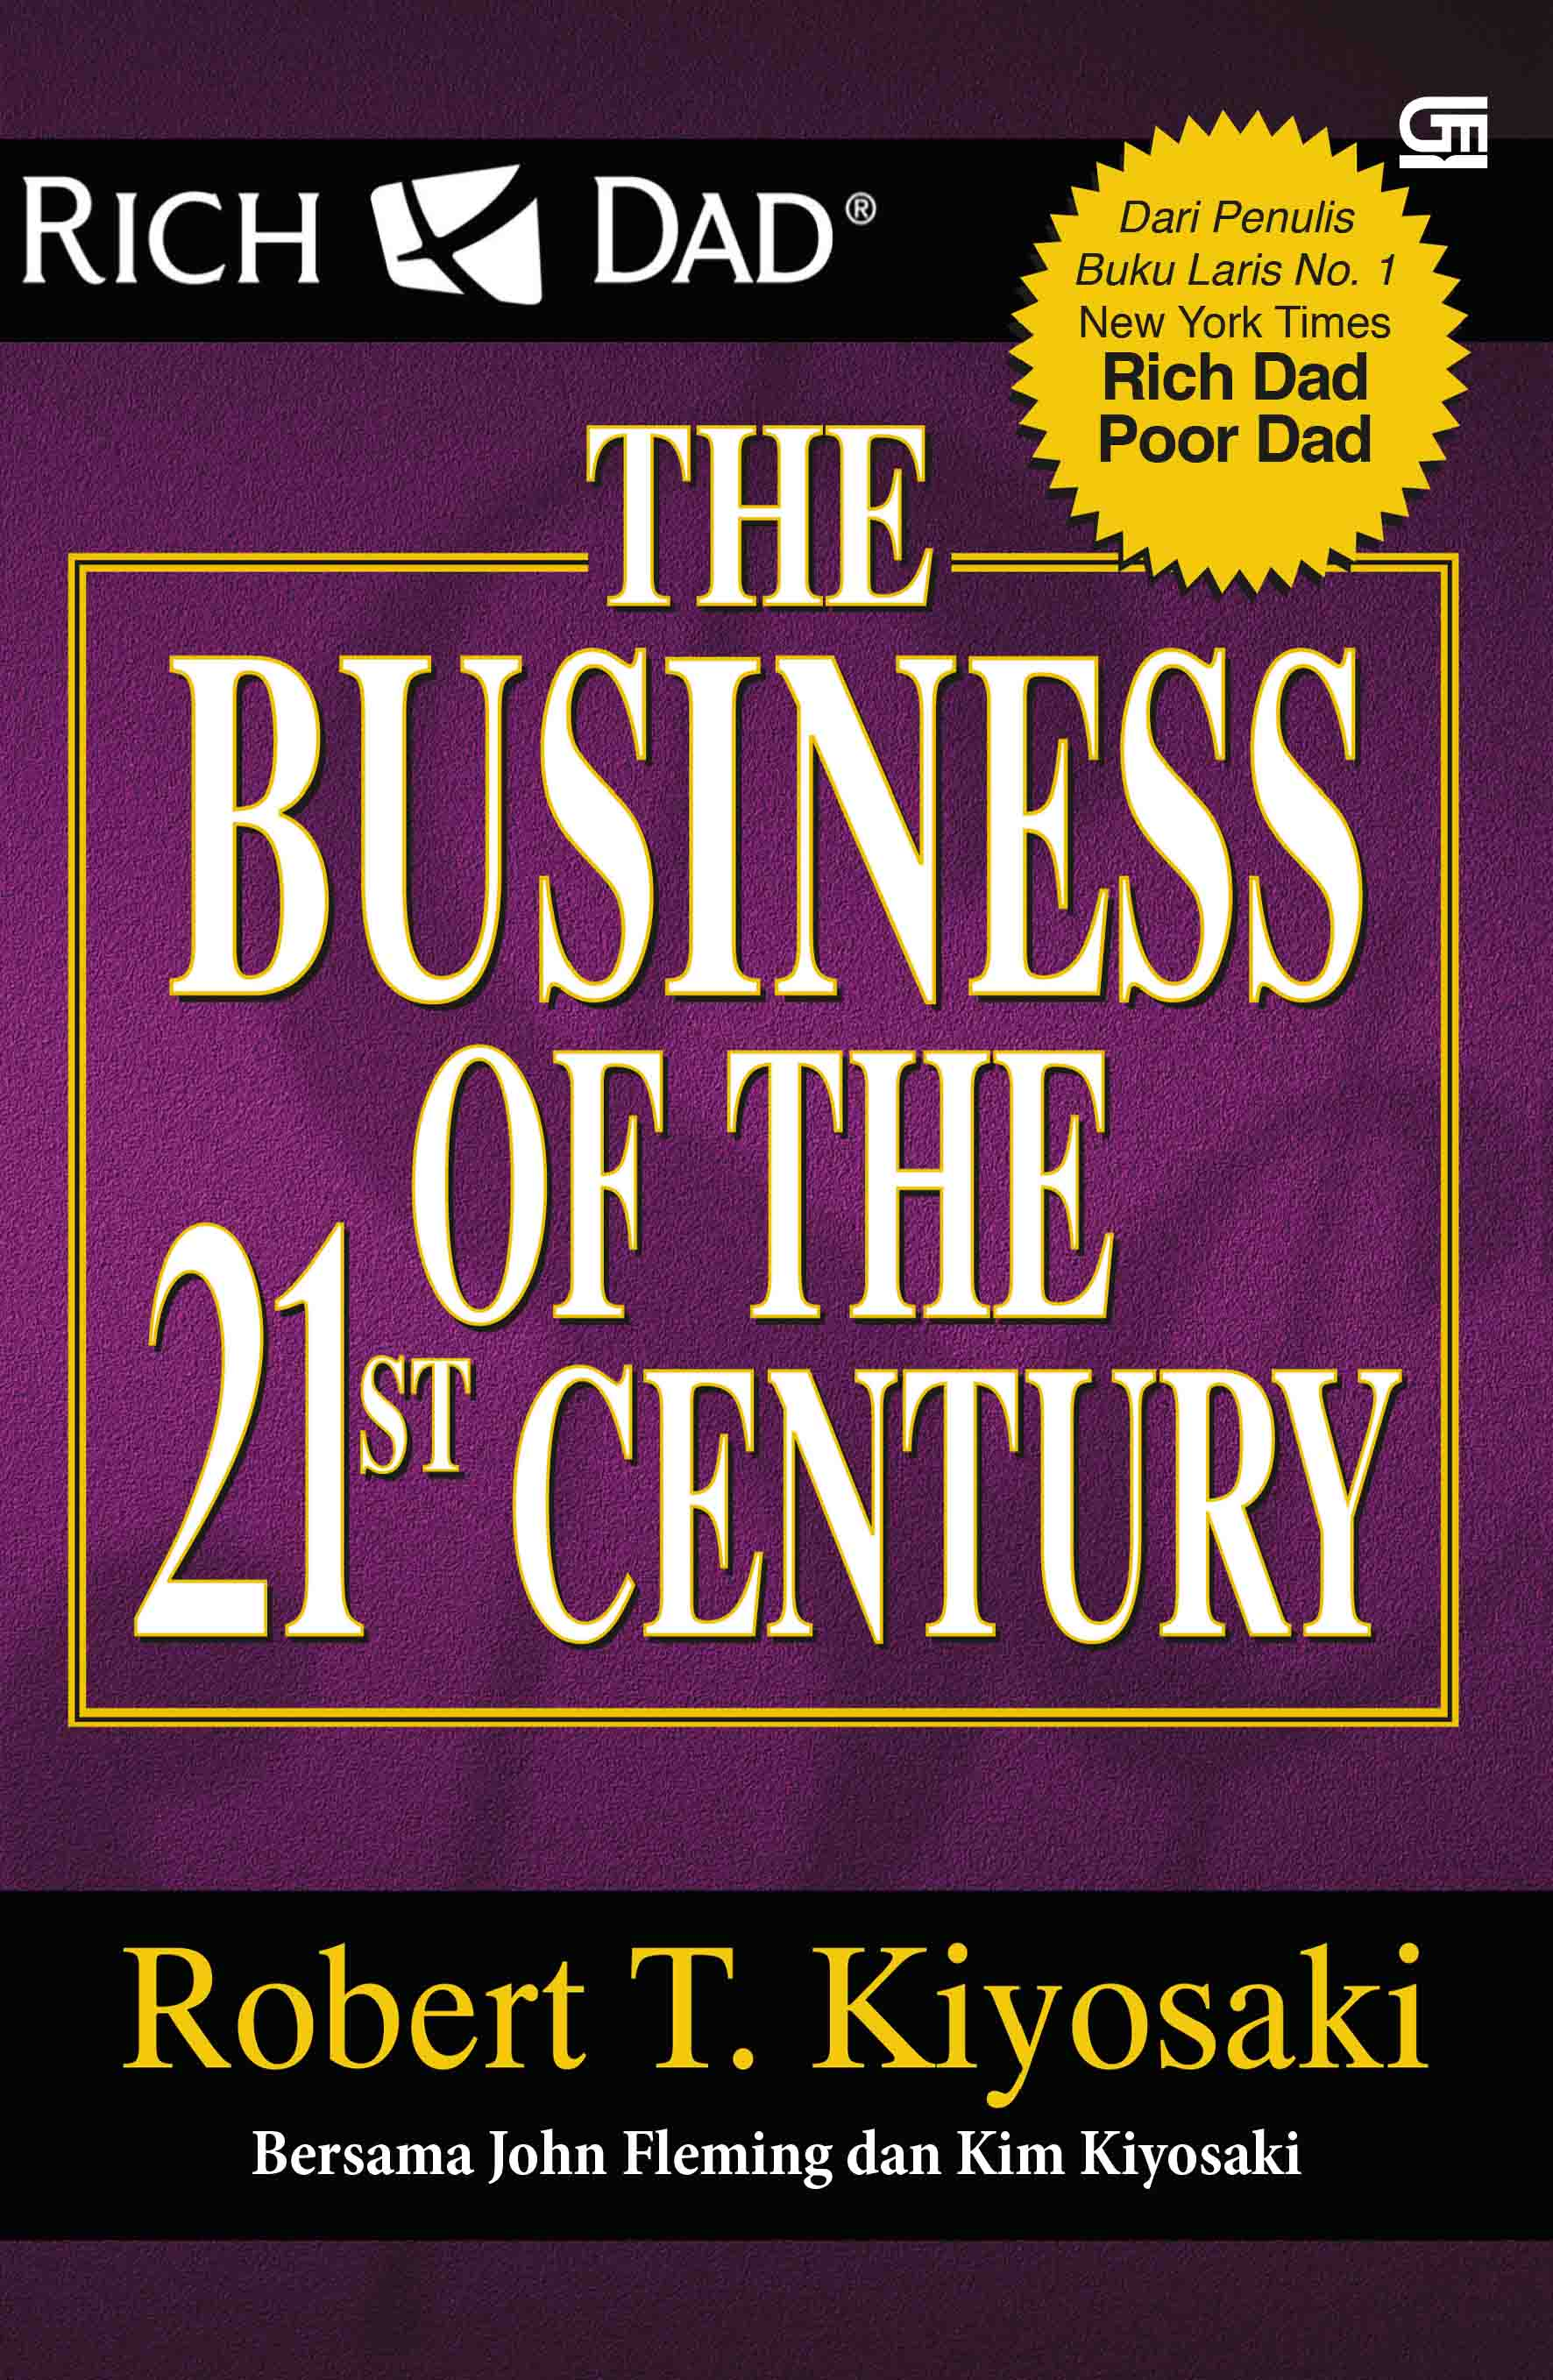 Rich Dad The Business of the 21st Century (Ed. Revisi)